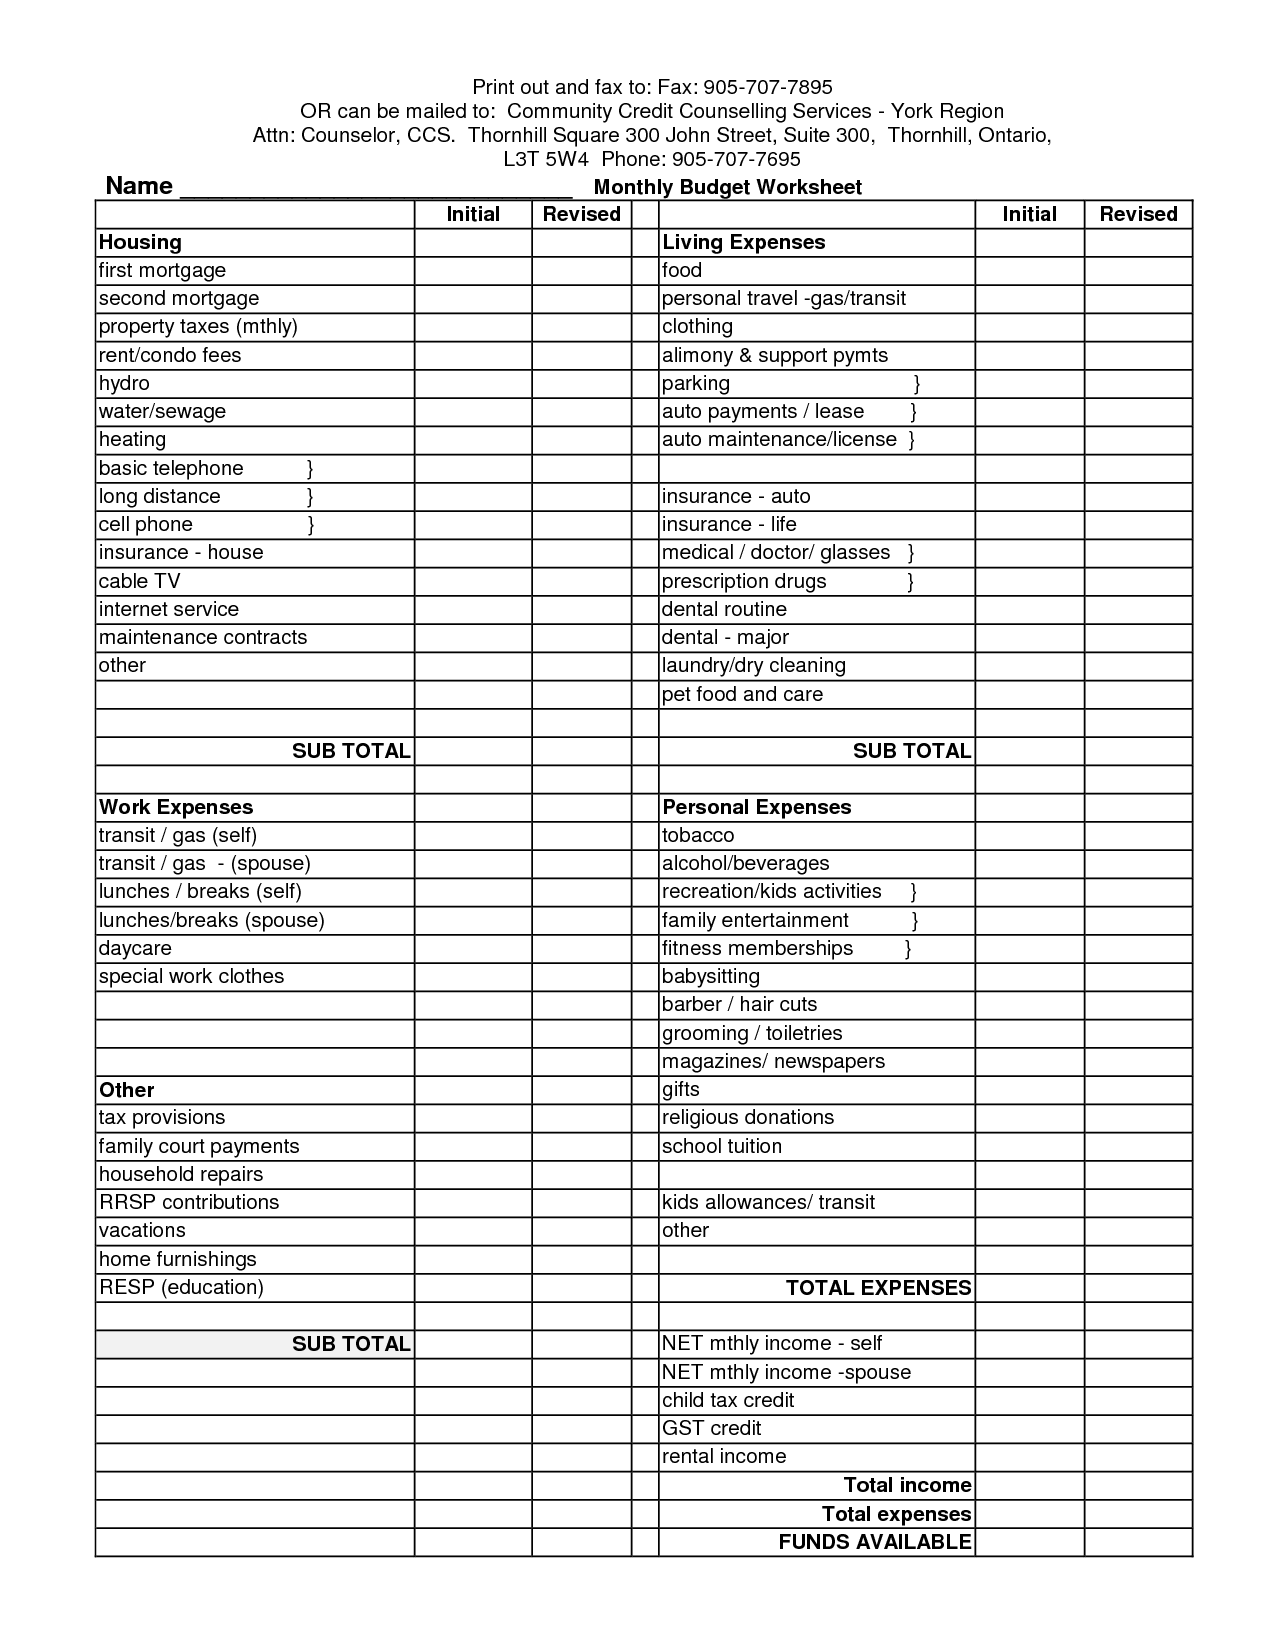 5 Best Images Of Blank Monthly Budget Worksheet Printable